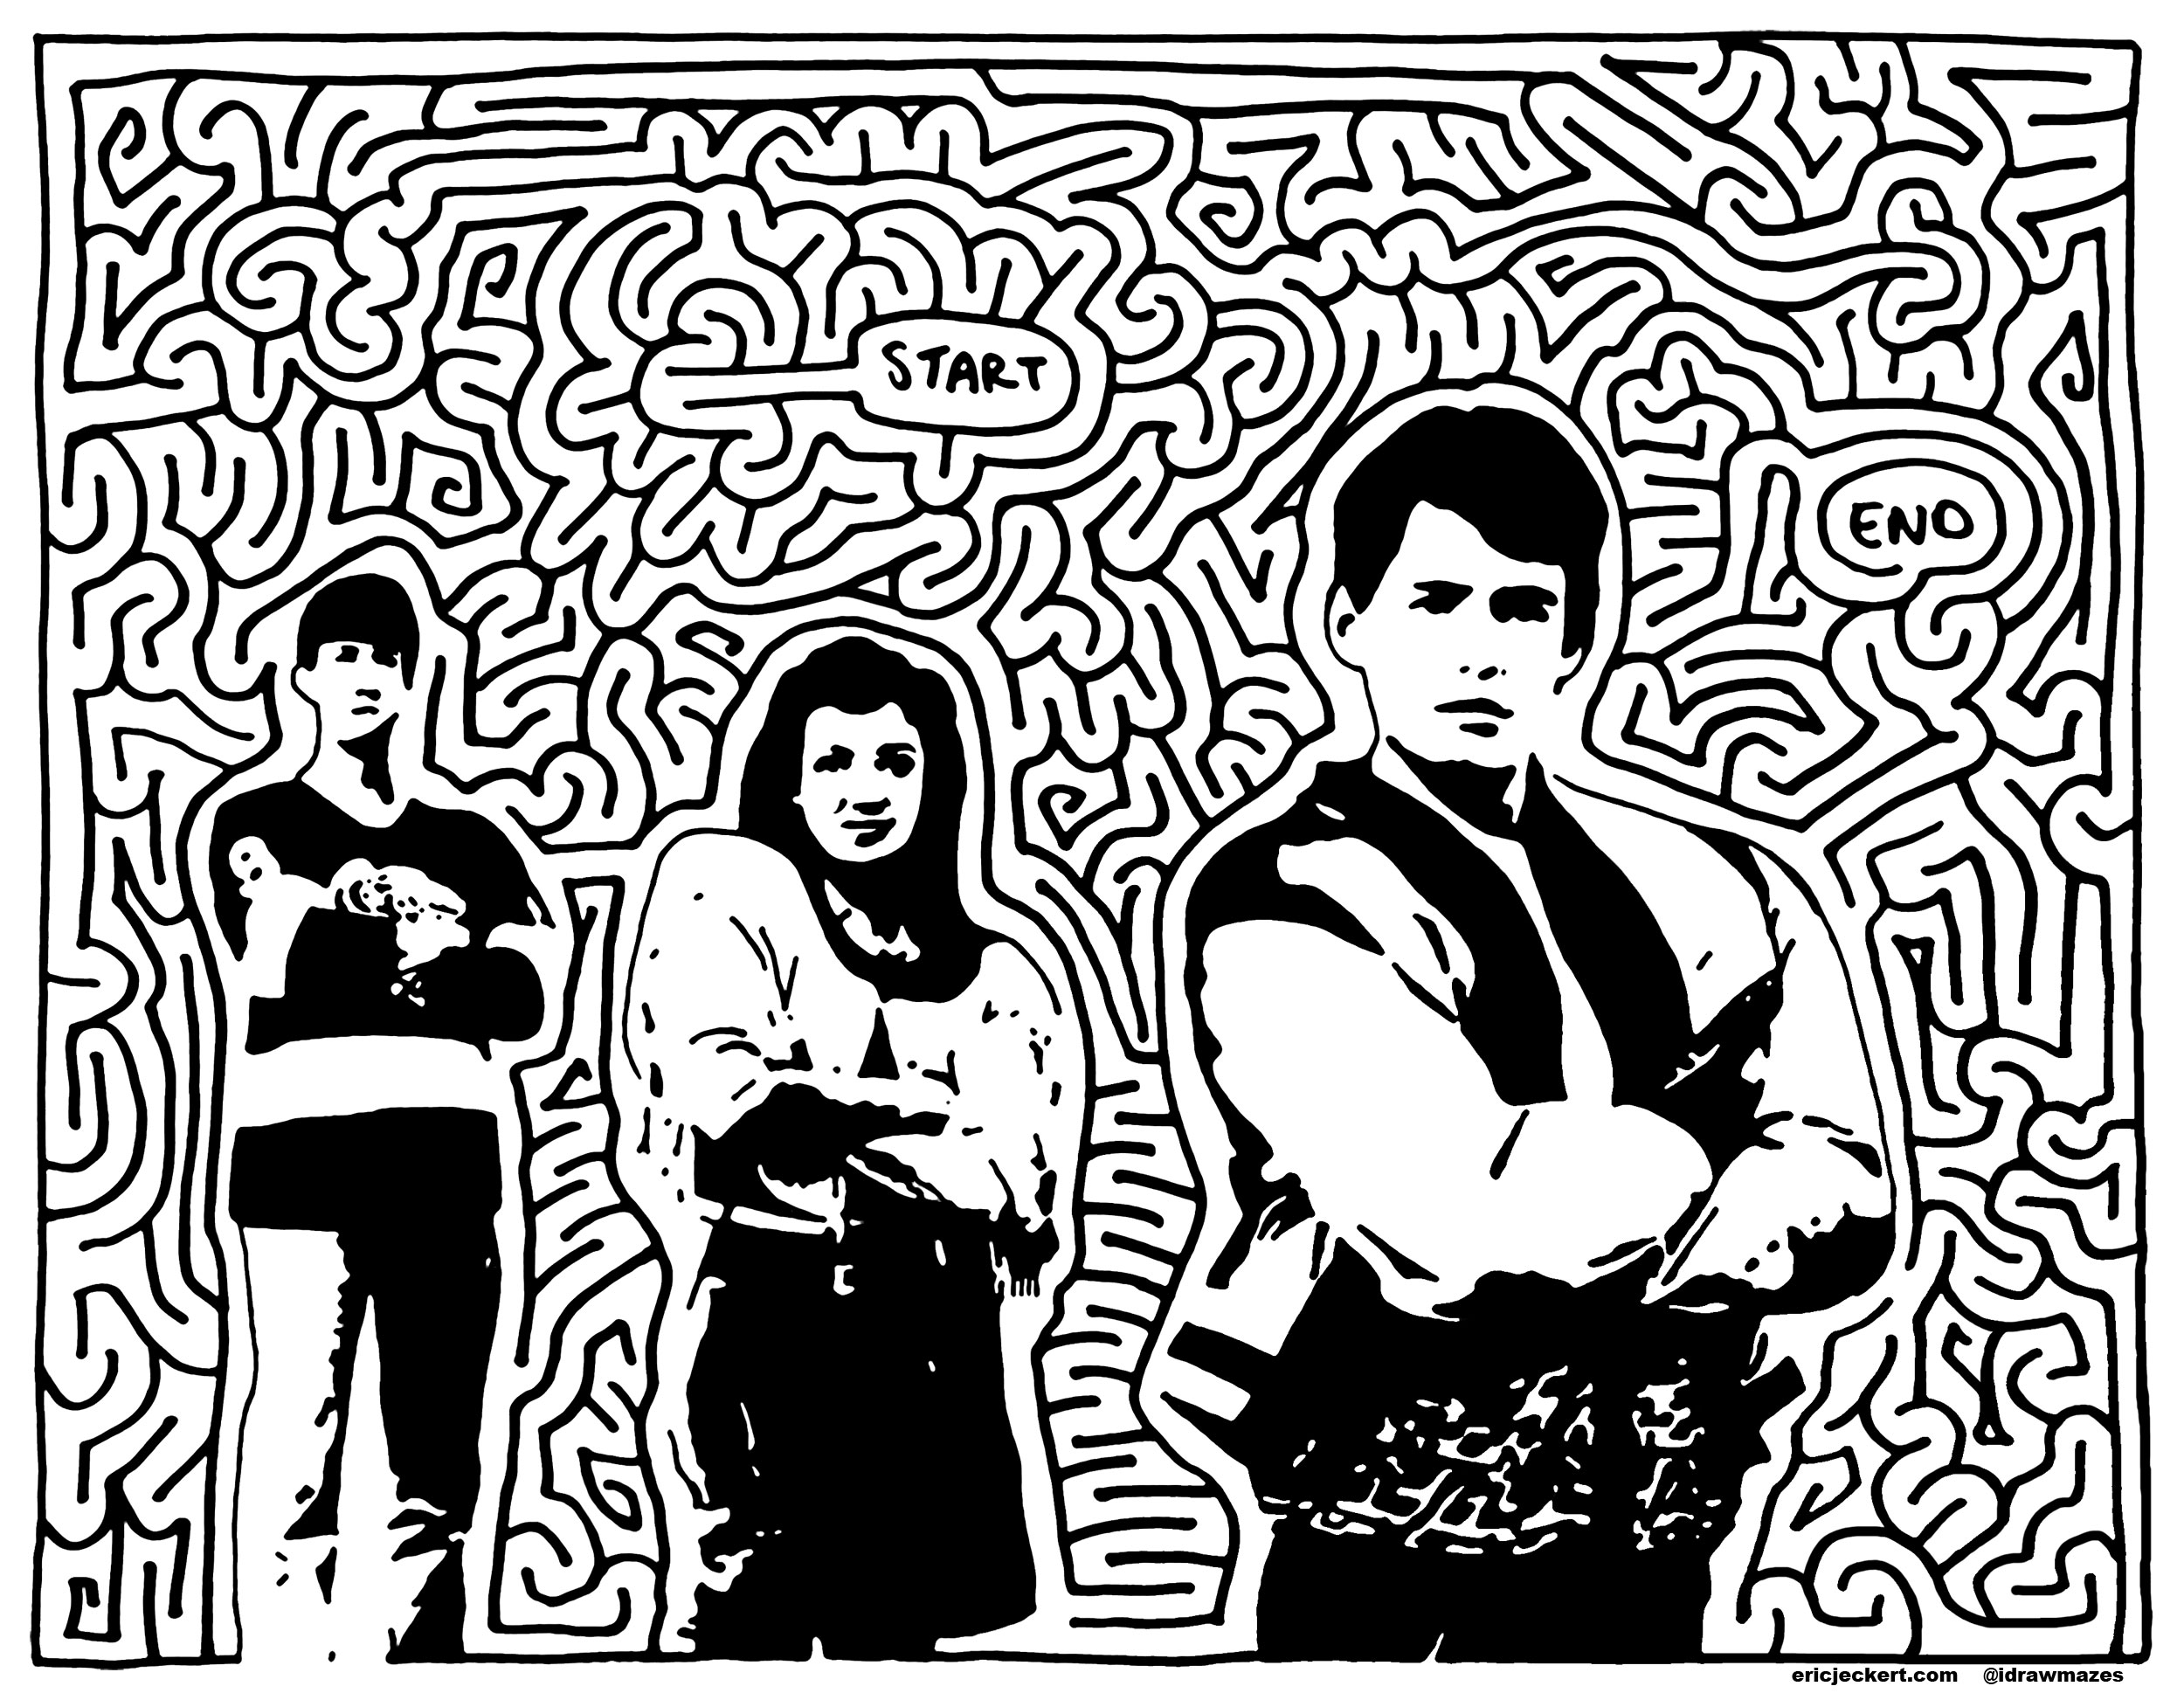 Ferris buellers day off clipart svg black and white library mazes » ferris bueller\'s day off - by Eric J Eckert svg black and white library